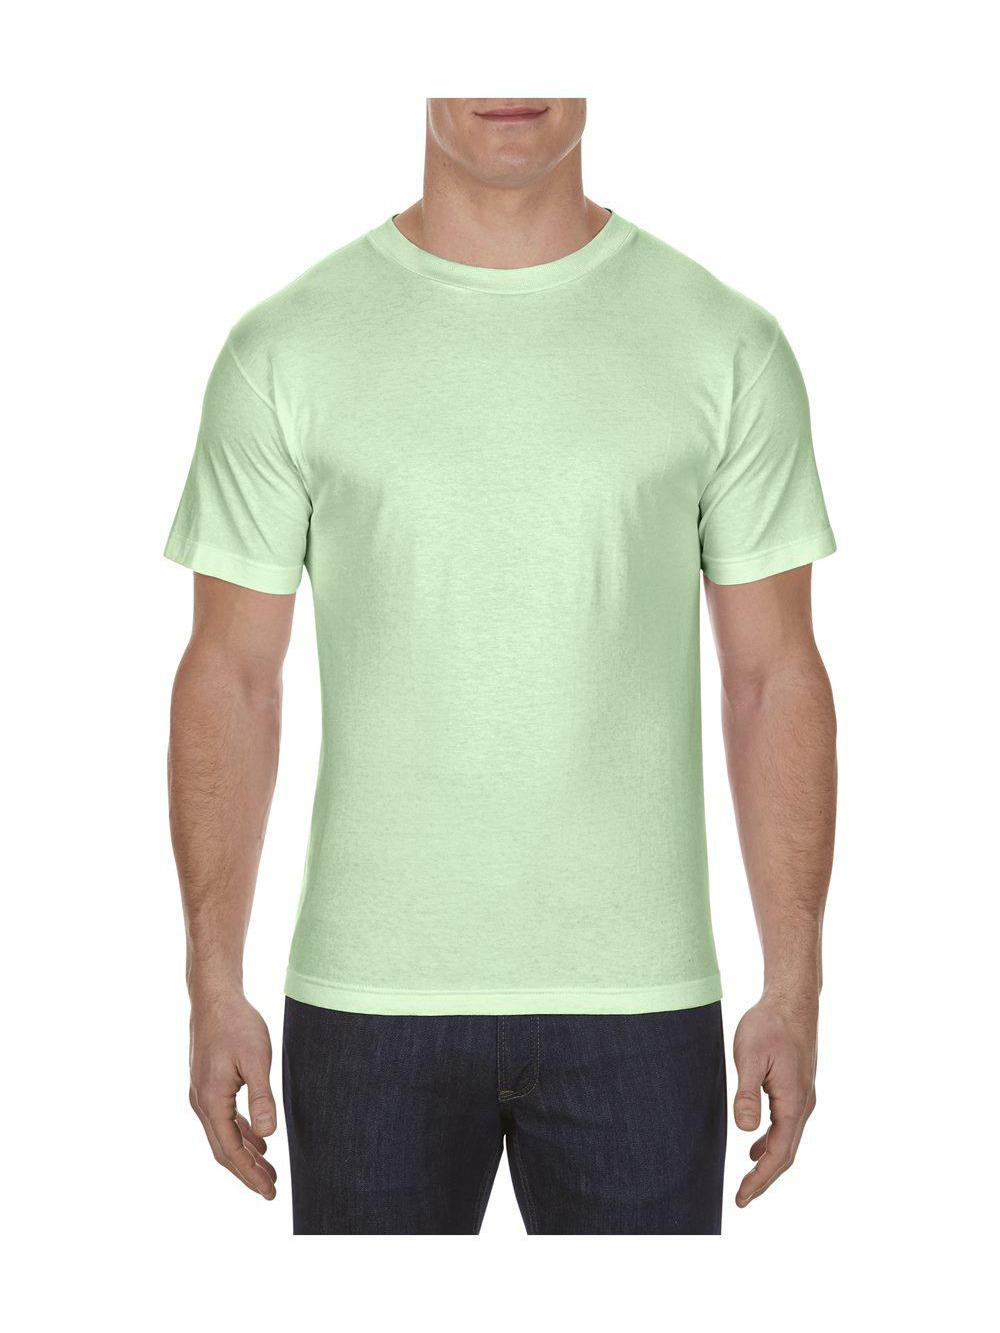 ALSTYLE-Classic-T-Shirt-1301 thumbnail 49